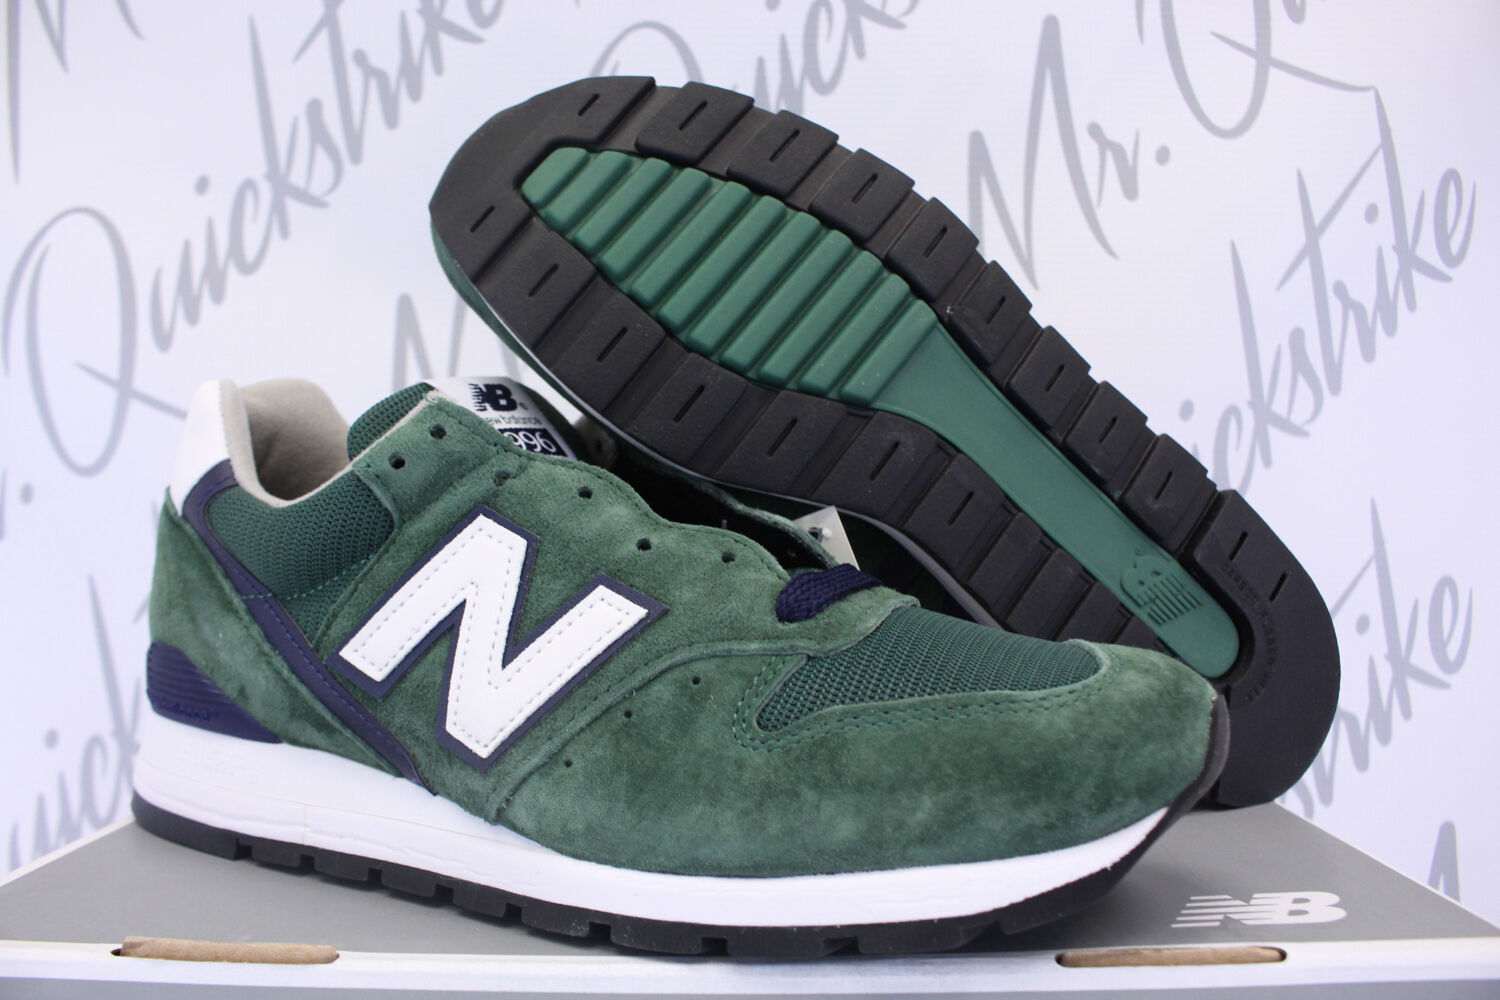 outlet store 5501a 0ca39 NEW BALANCE 996 SZ 9.5 HERITAGE HERITAGE HERITAGE MADE IN USA DARK GREEN  NAVY WHITE M996CSL